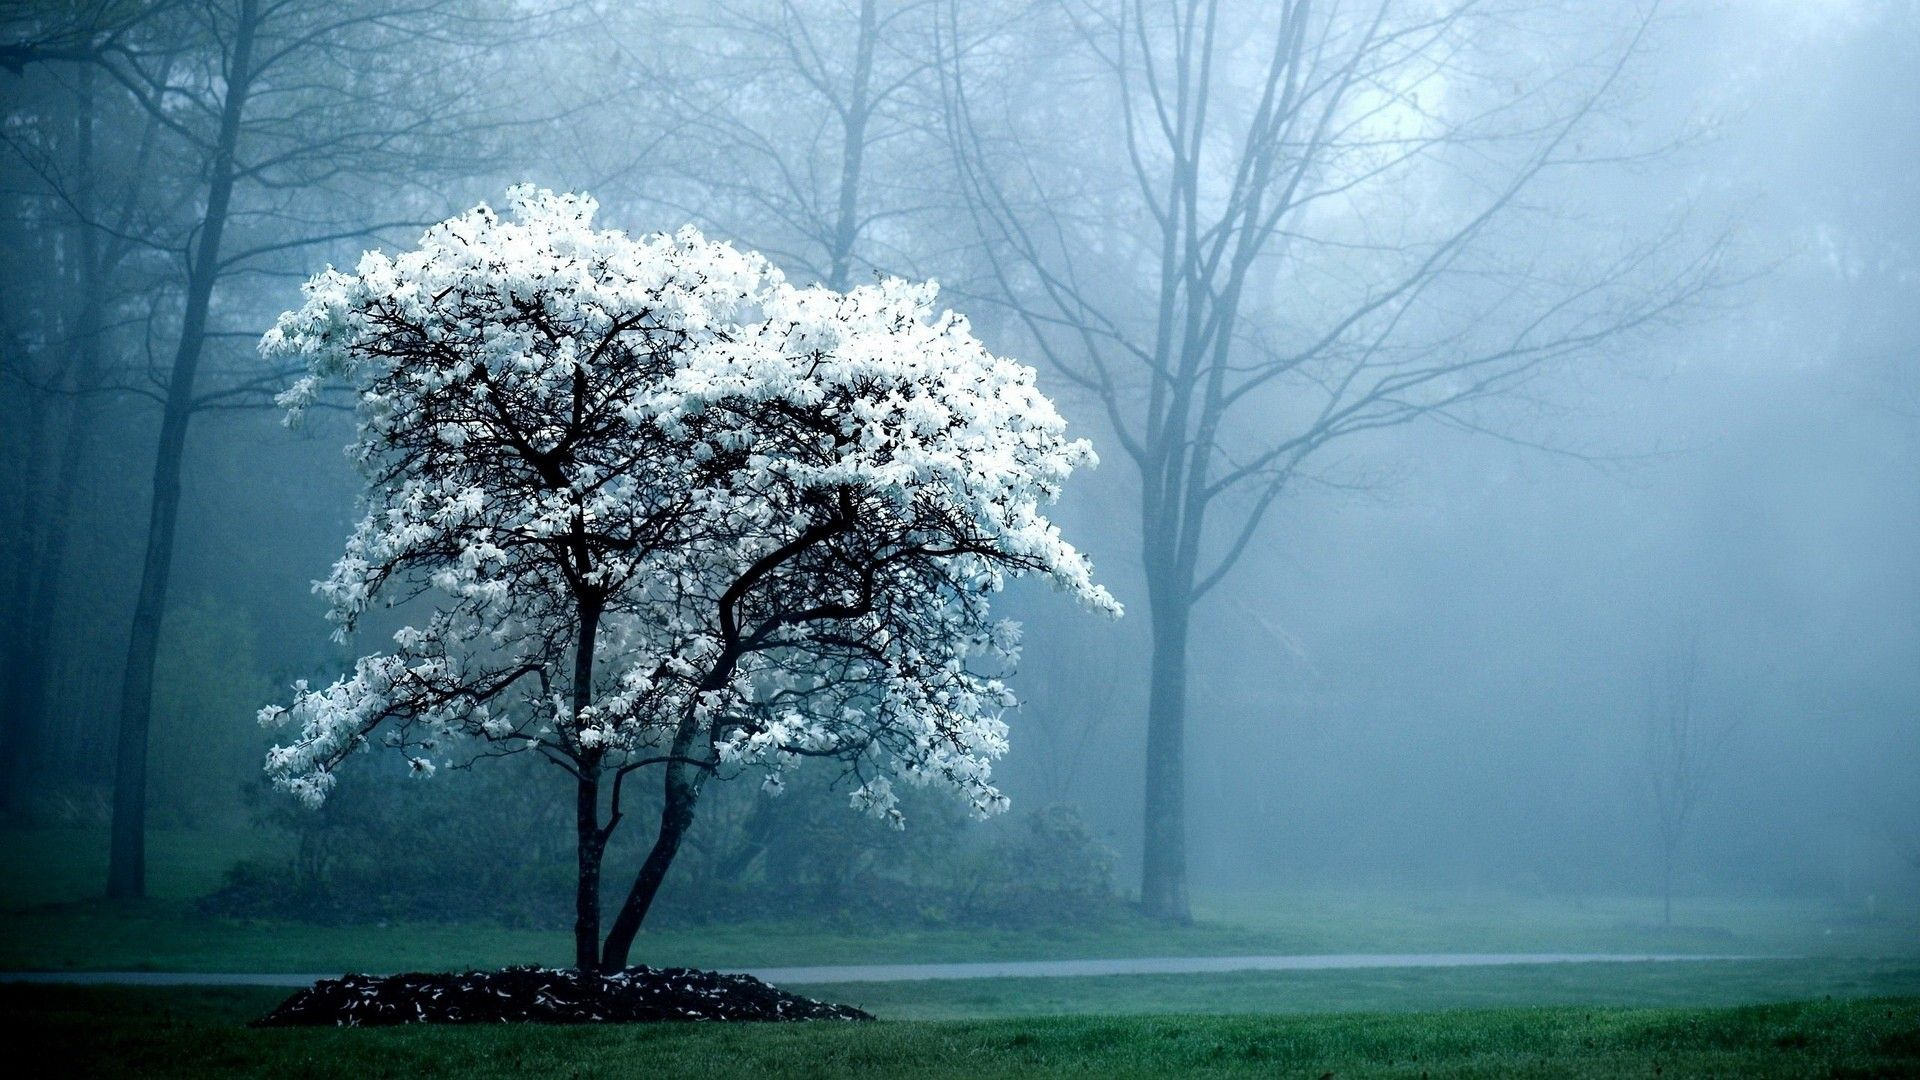 Landscapes Trees Fog Magnolia White Flowers Flowered Trees Hd Nature Wallpapers Beautiful Nature Wallpaper Computer Wallpaper Desktop Wallpapers